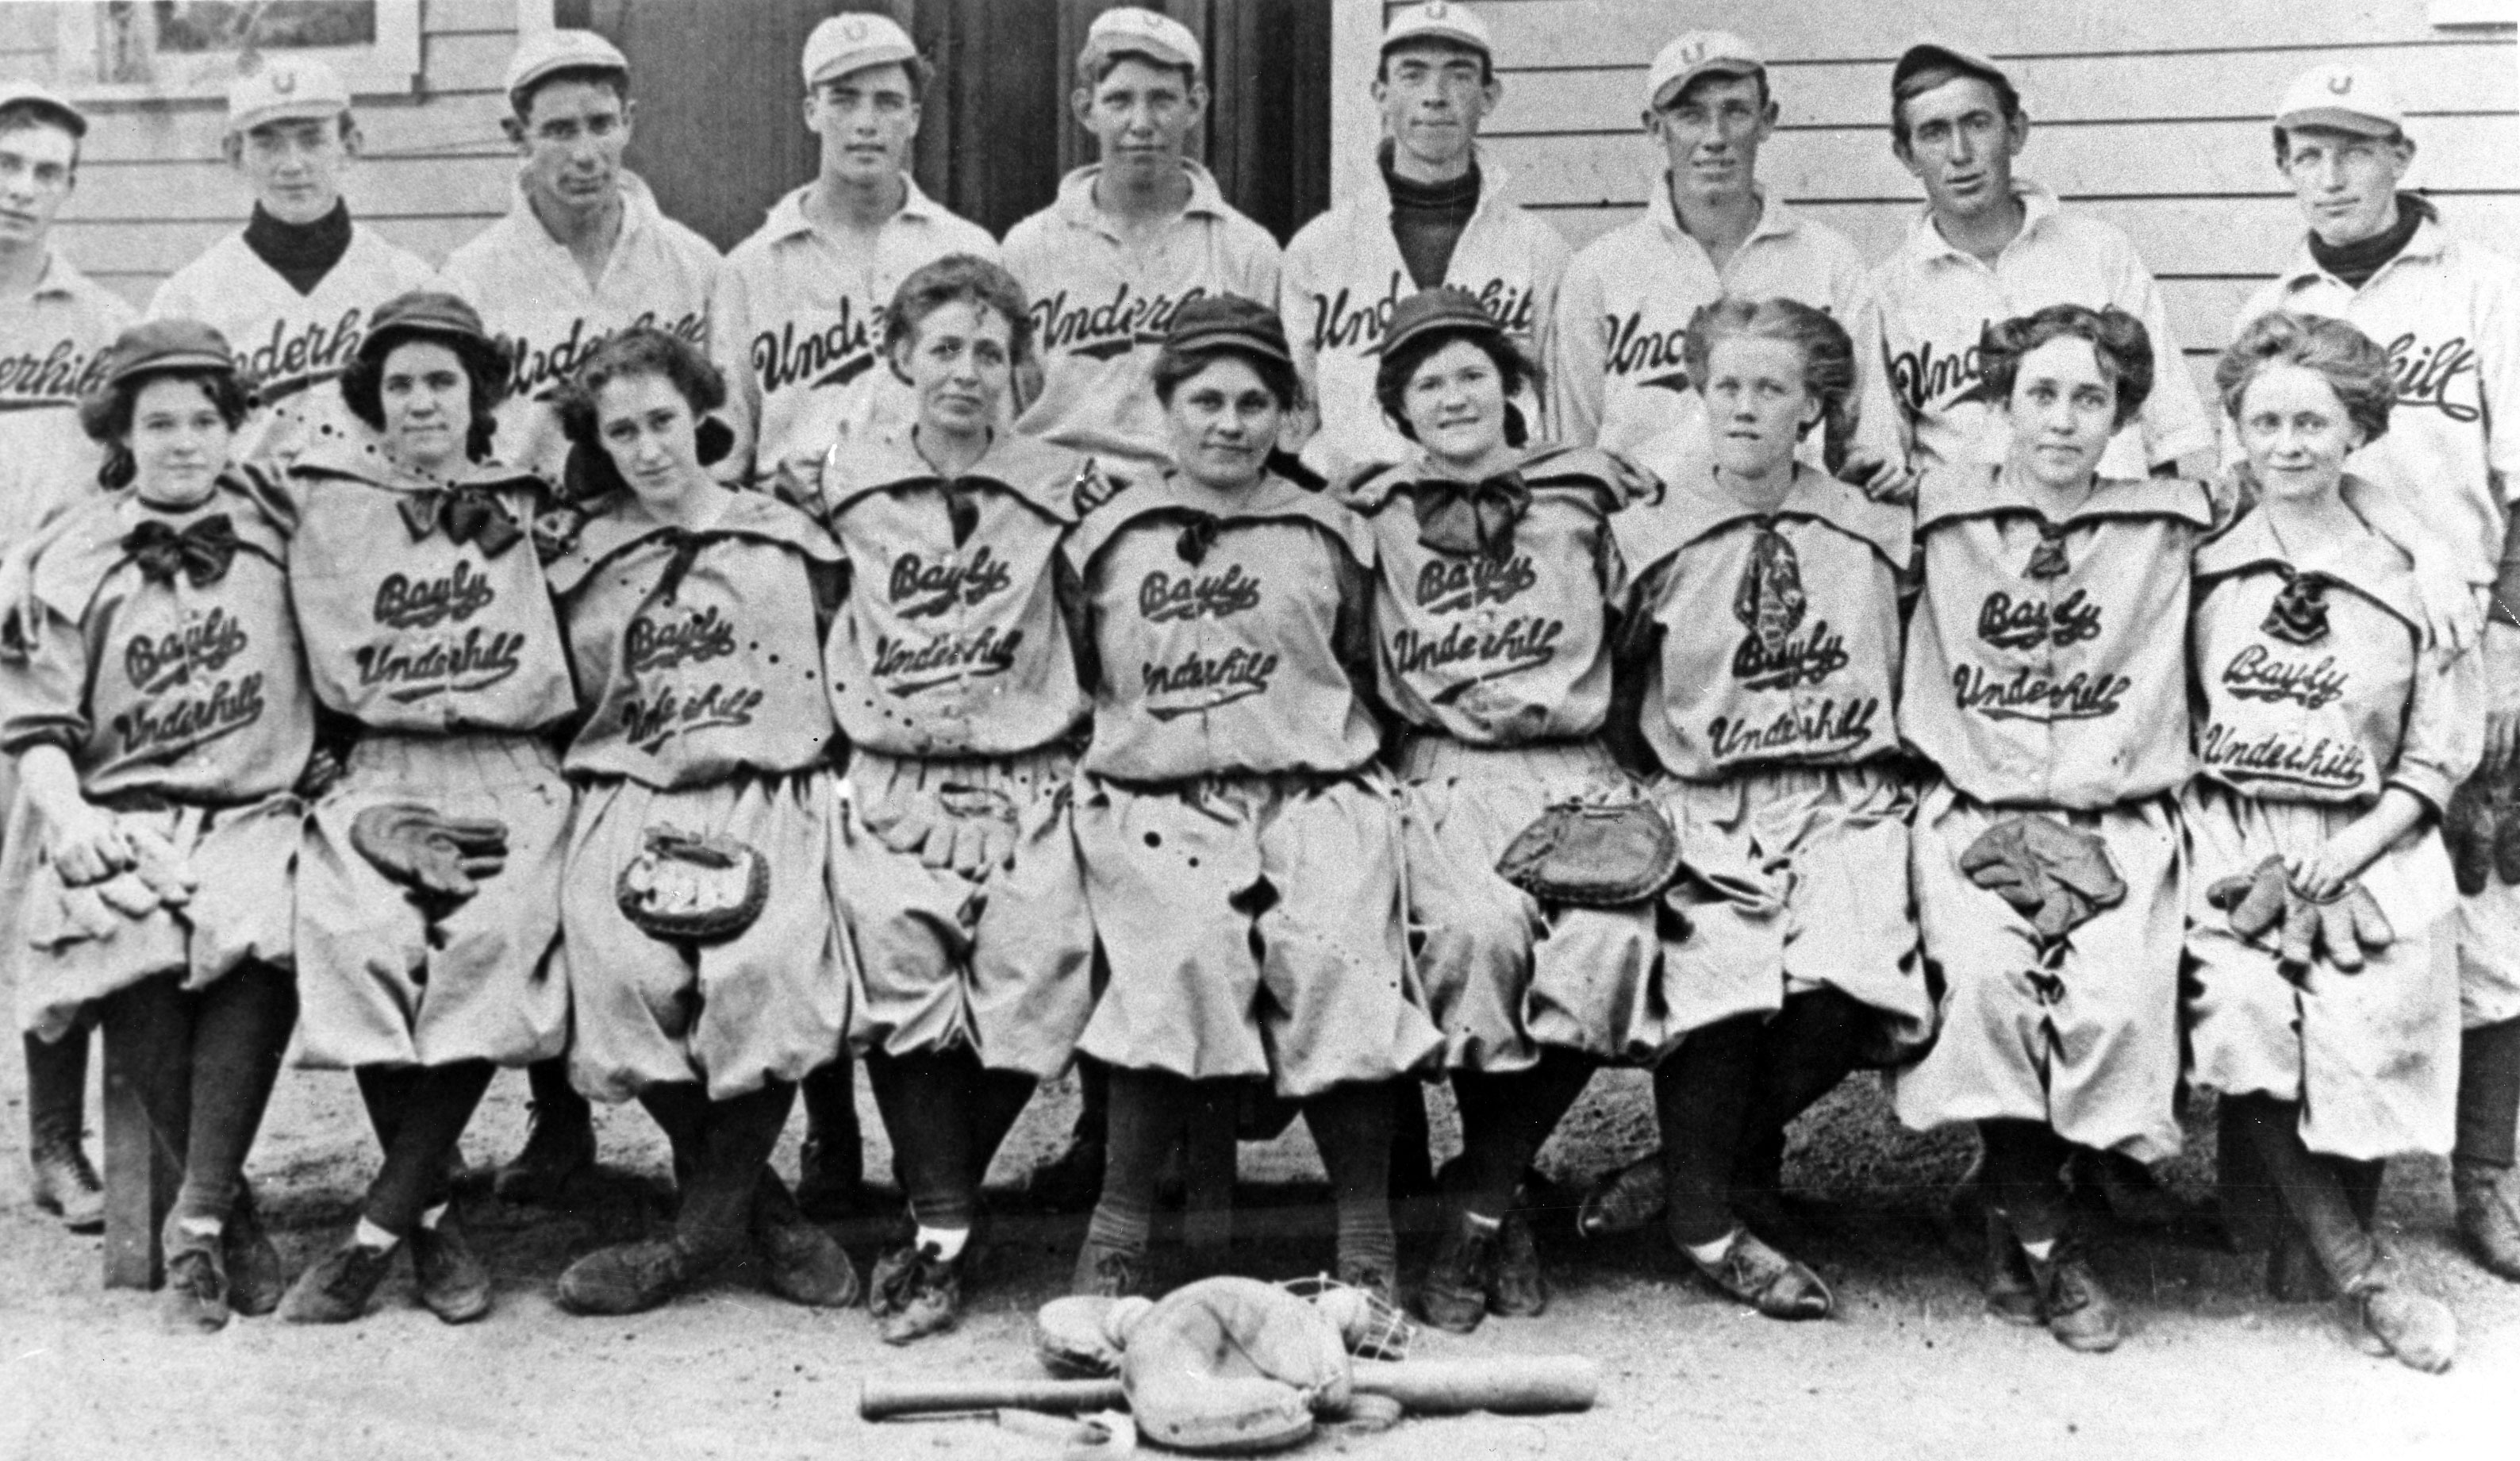 Underhill male and Bayly-Underhill female baseball teams, Denver, about 1910